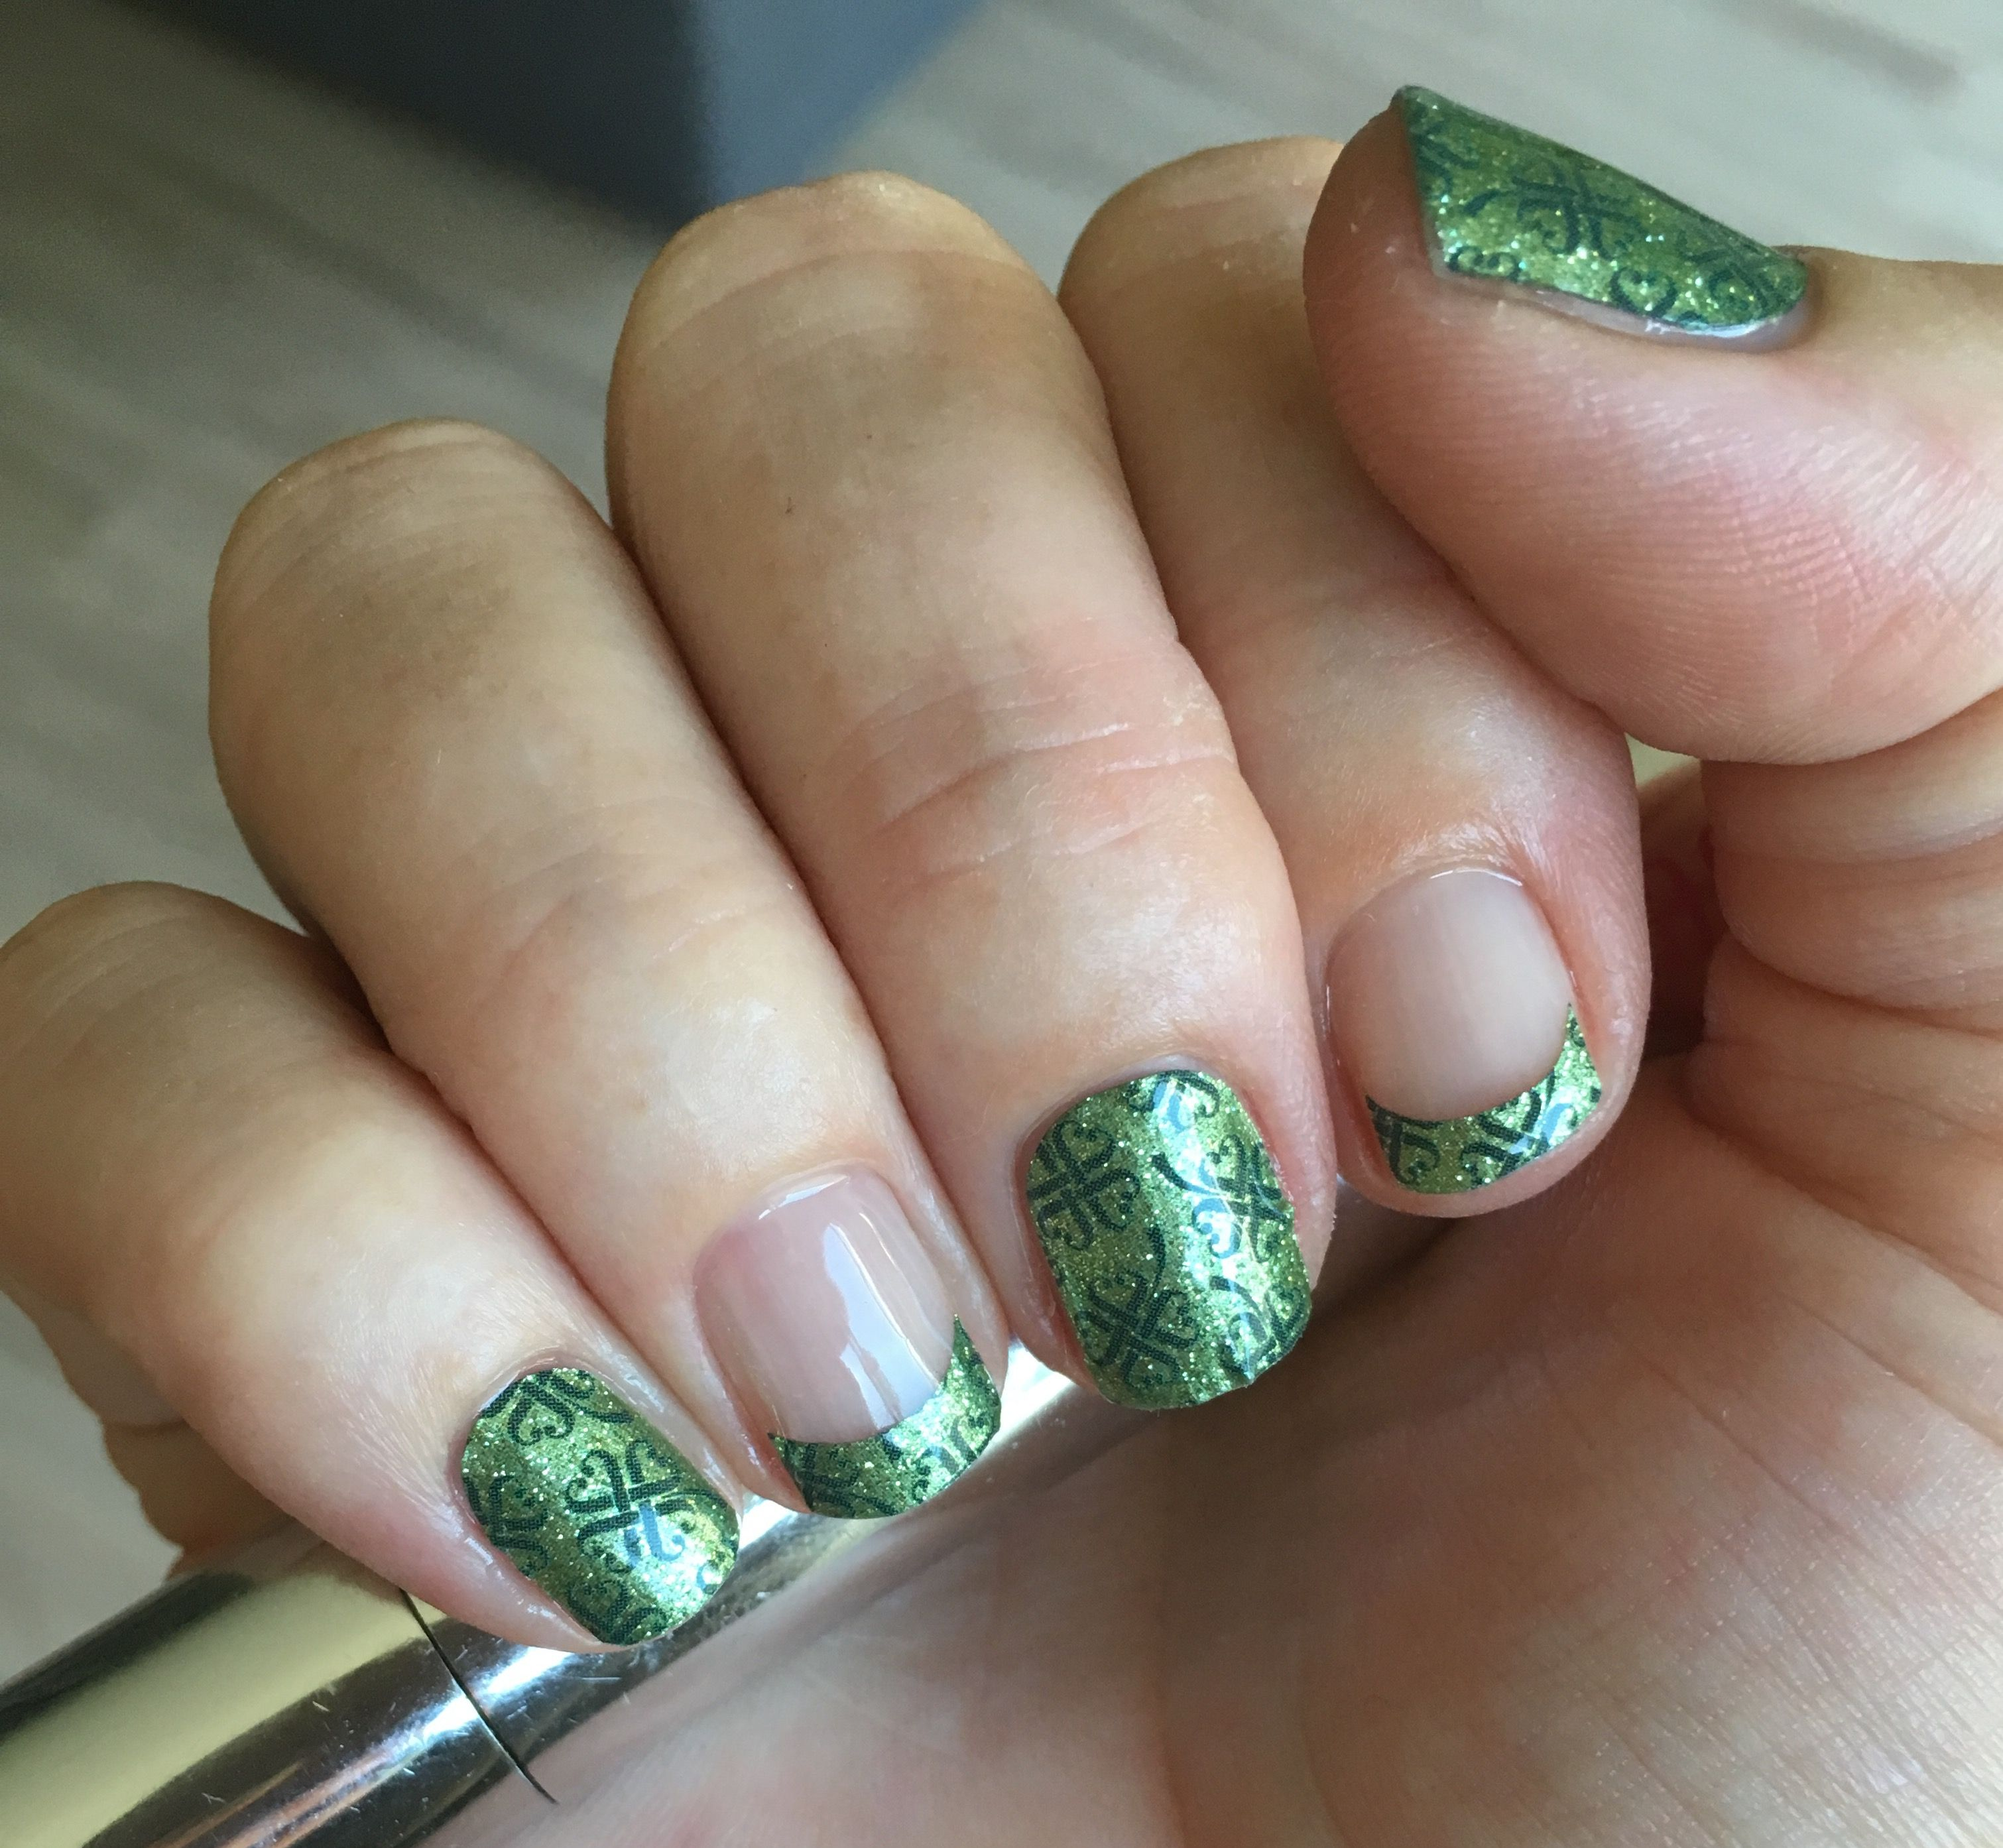 luckyyoujn with TruShine top coat to create fancy French tips - so ...